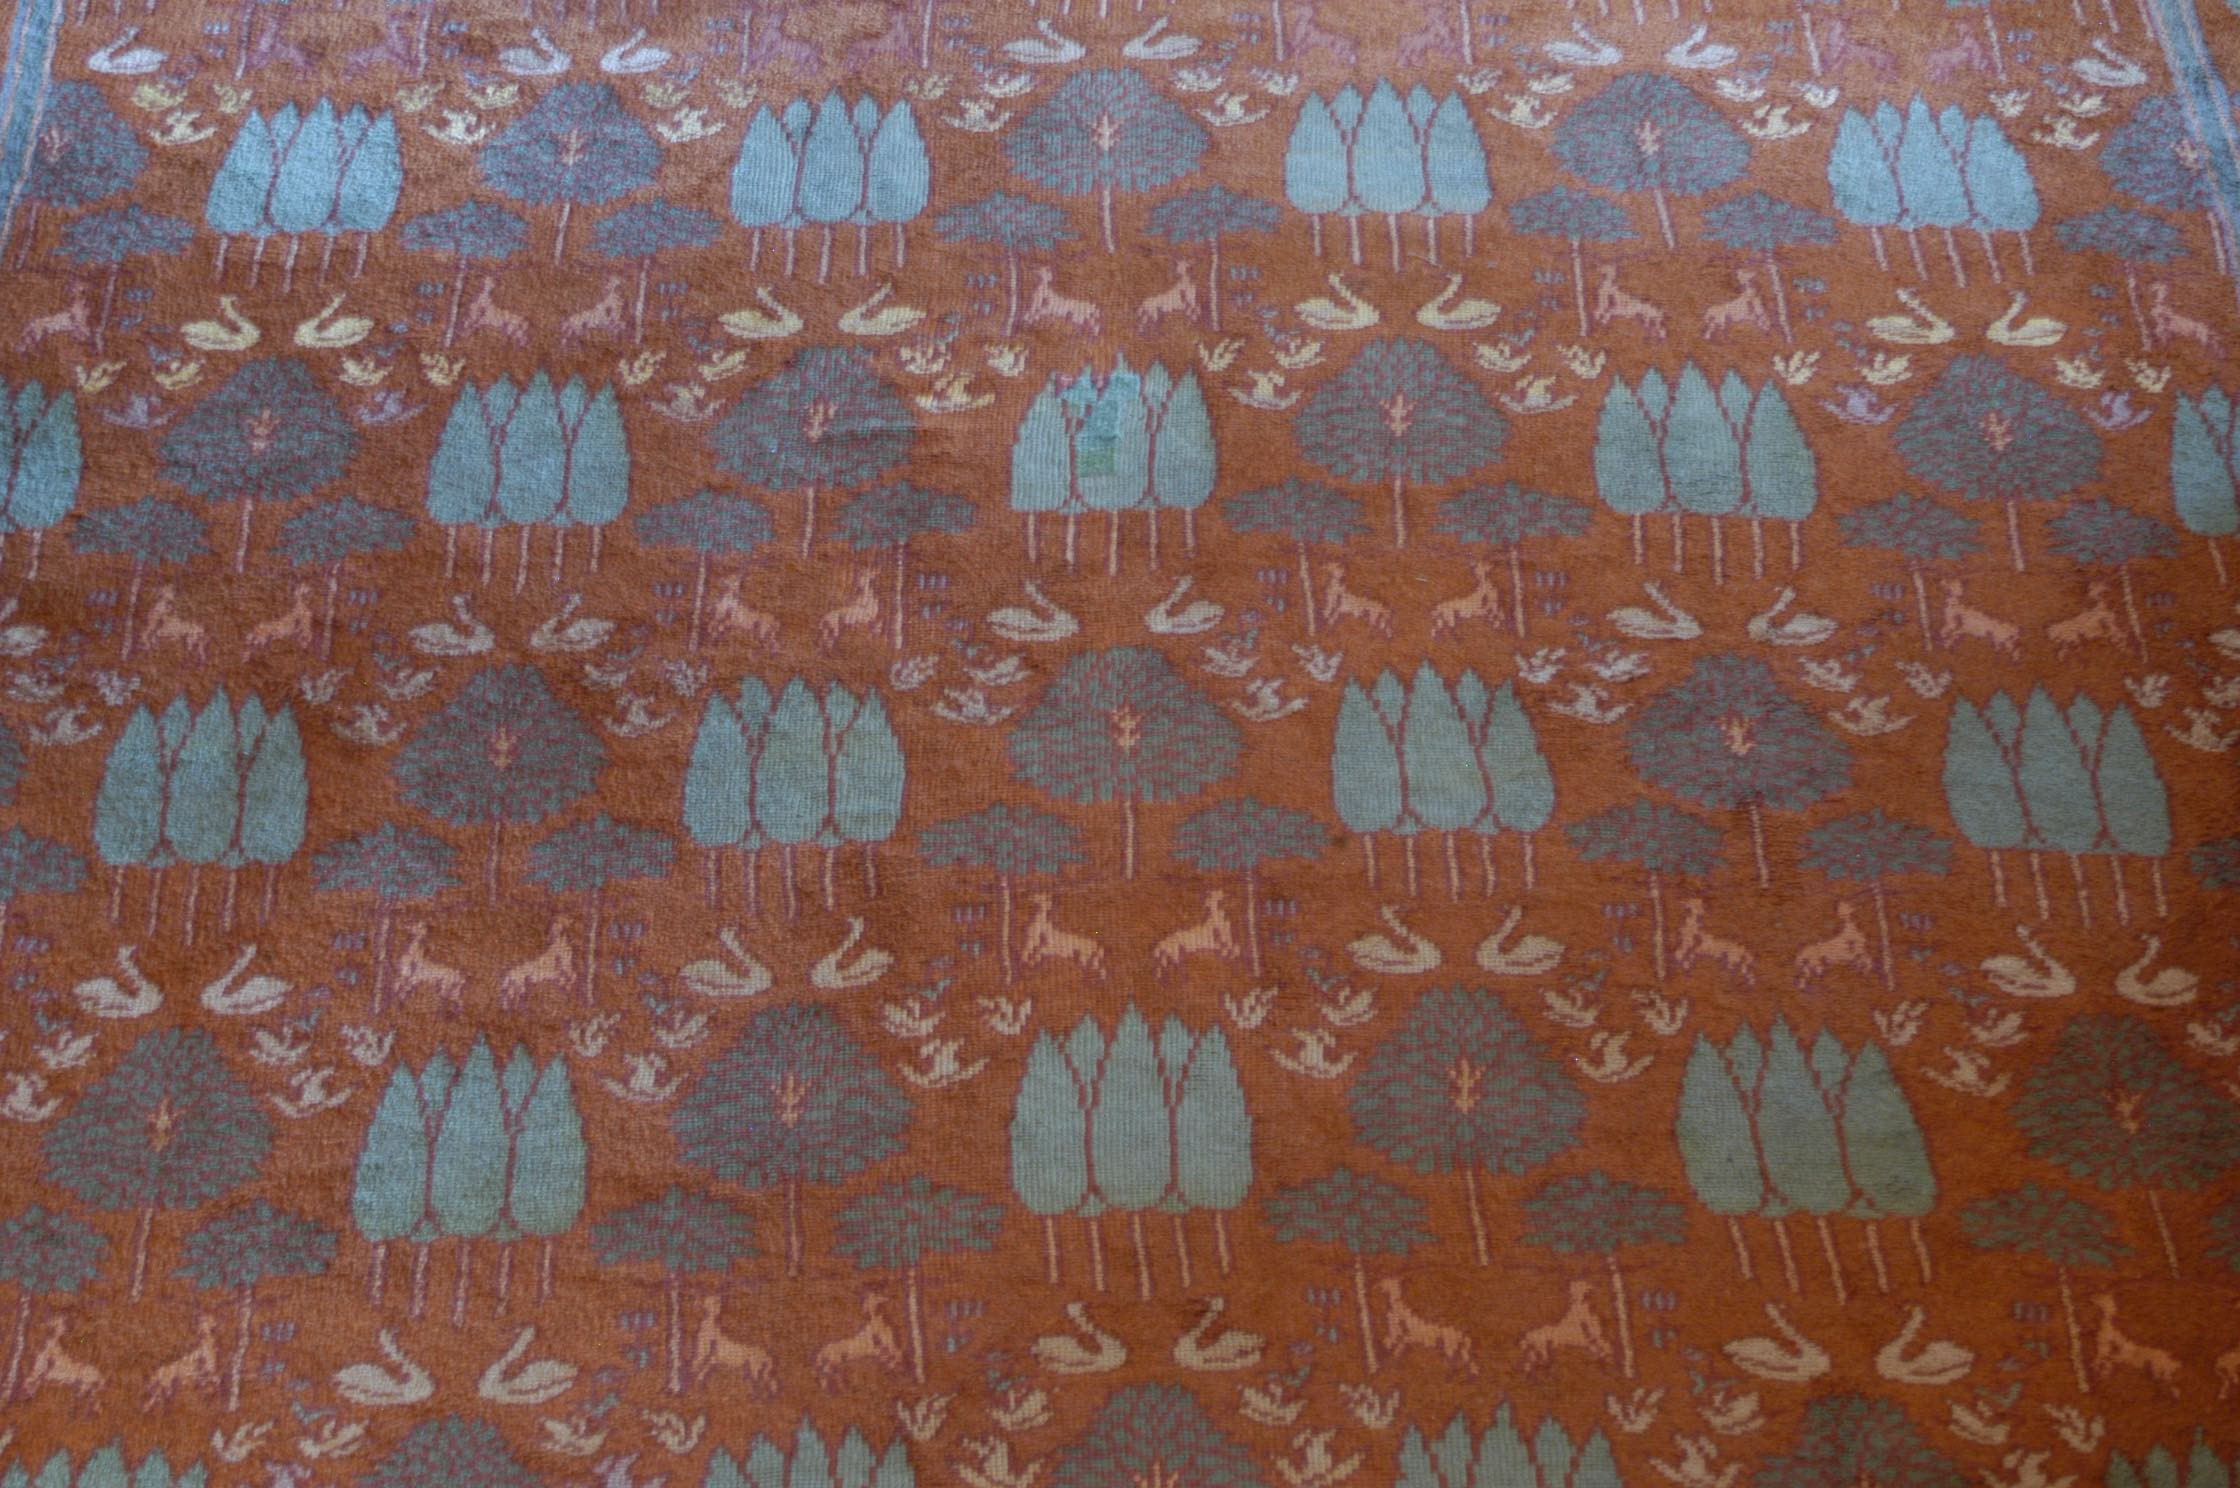 An Irish Donegal carpet attributed to C.F.A. Voysey